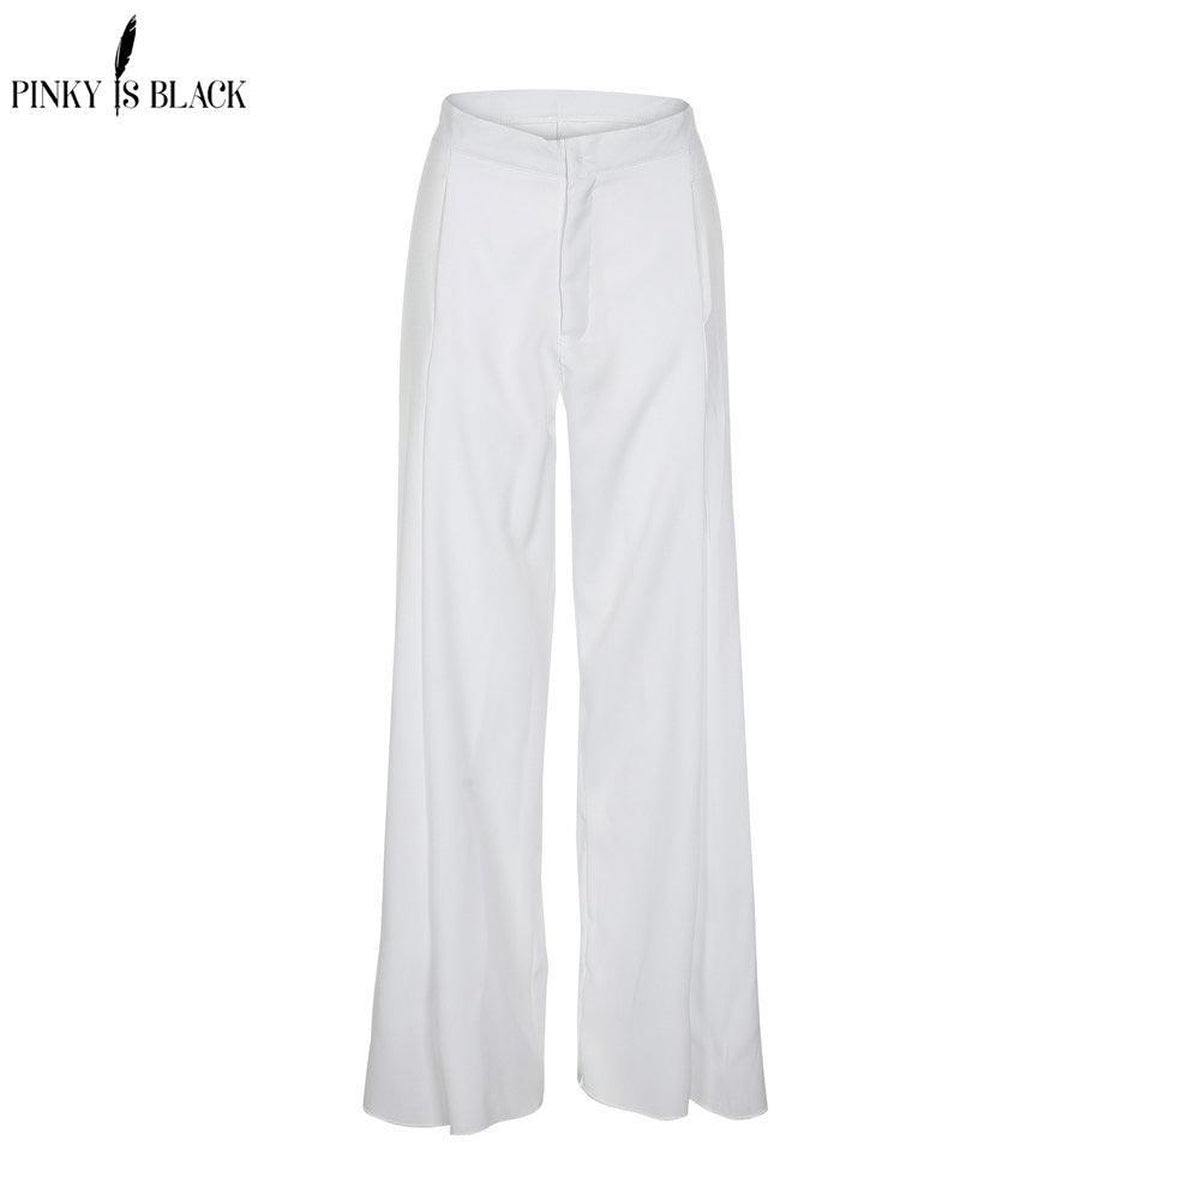 Pinky High Waist Front Fly Wide Leg Pants in White - Lookbook Boutique